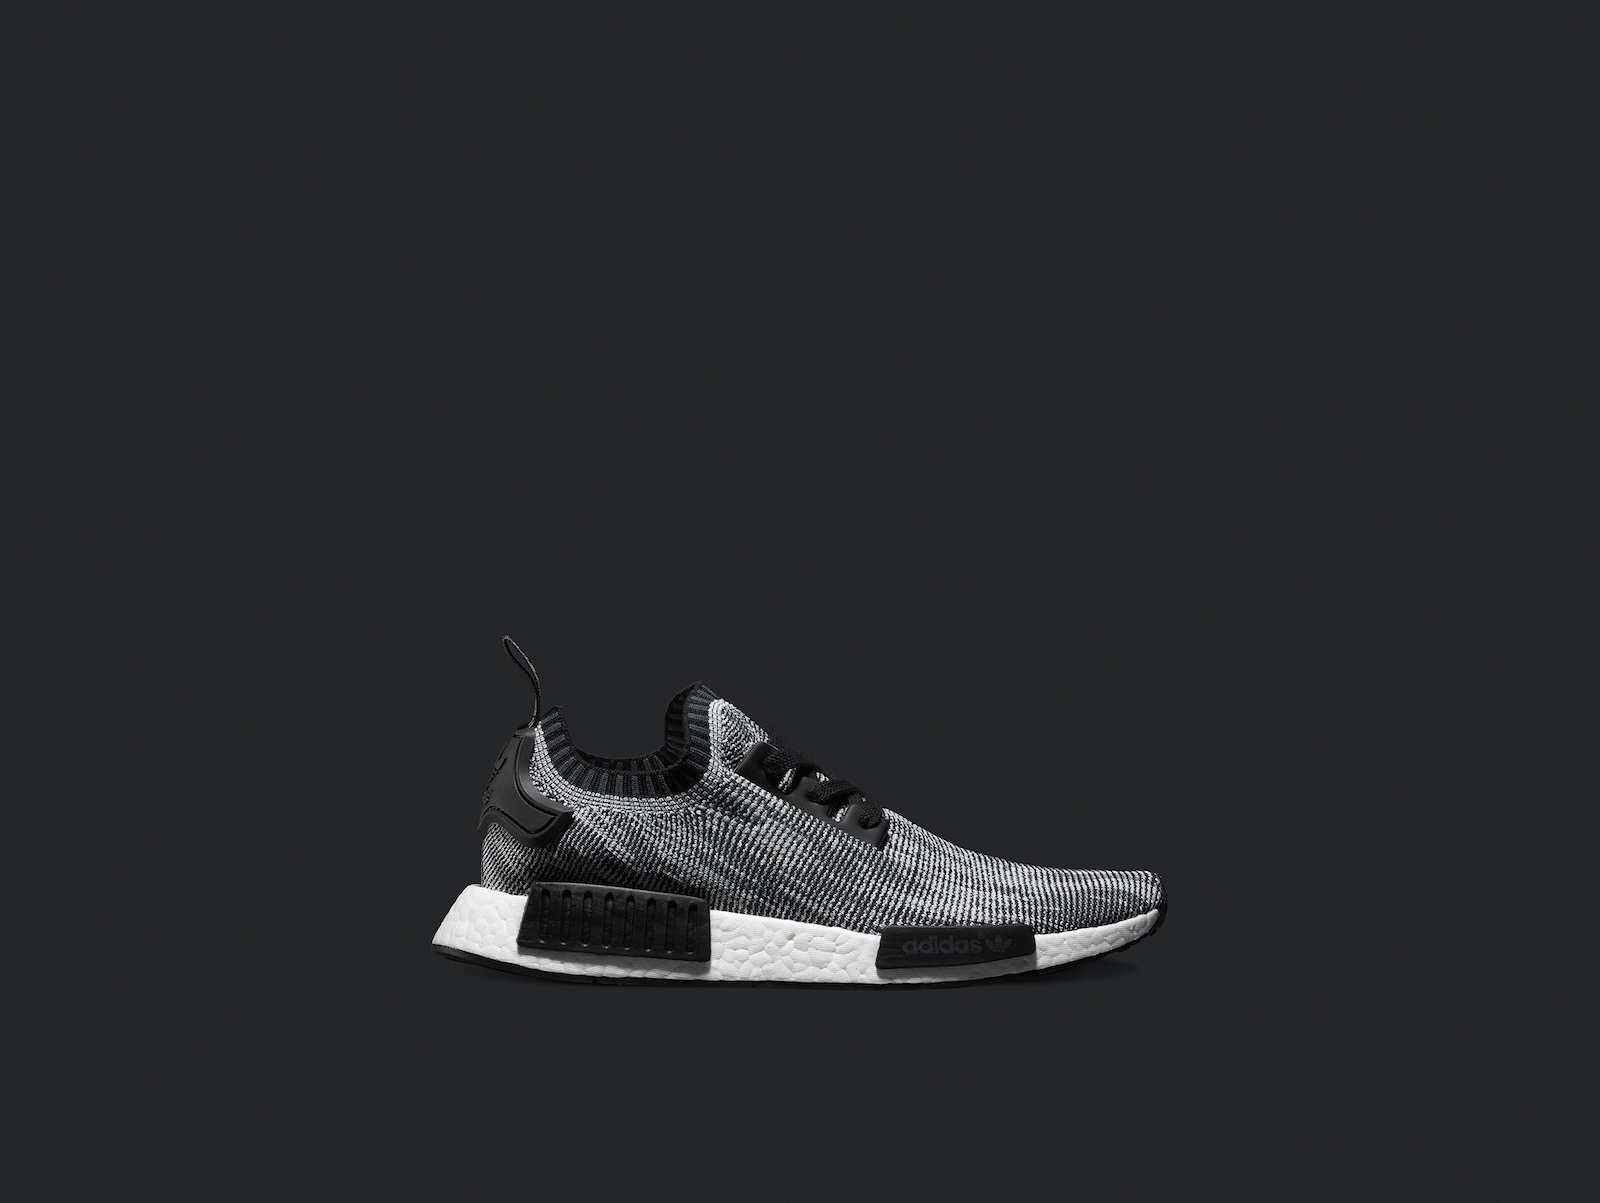 NMD_S79478_Black_Lateral